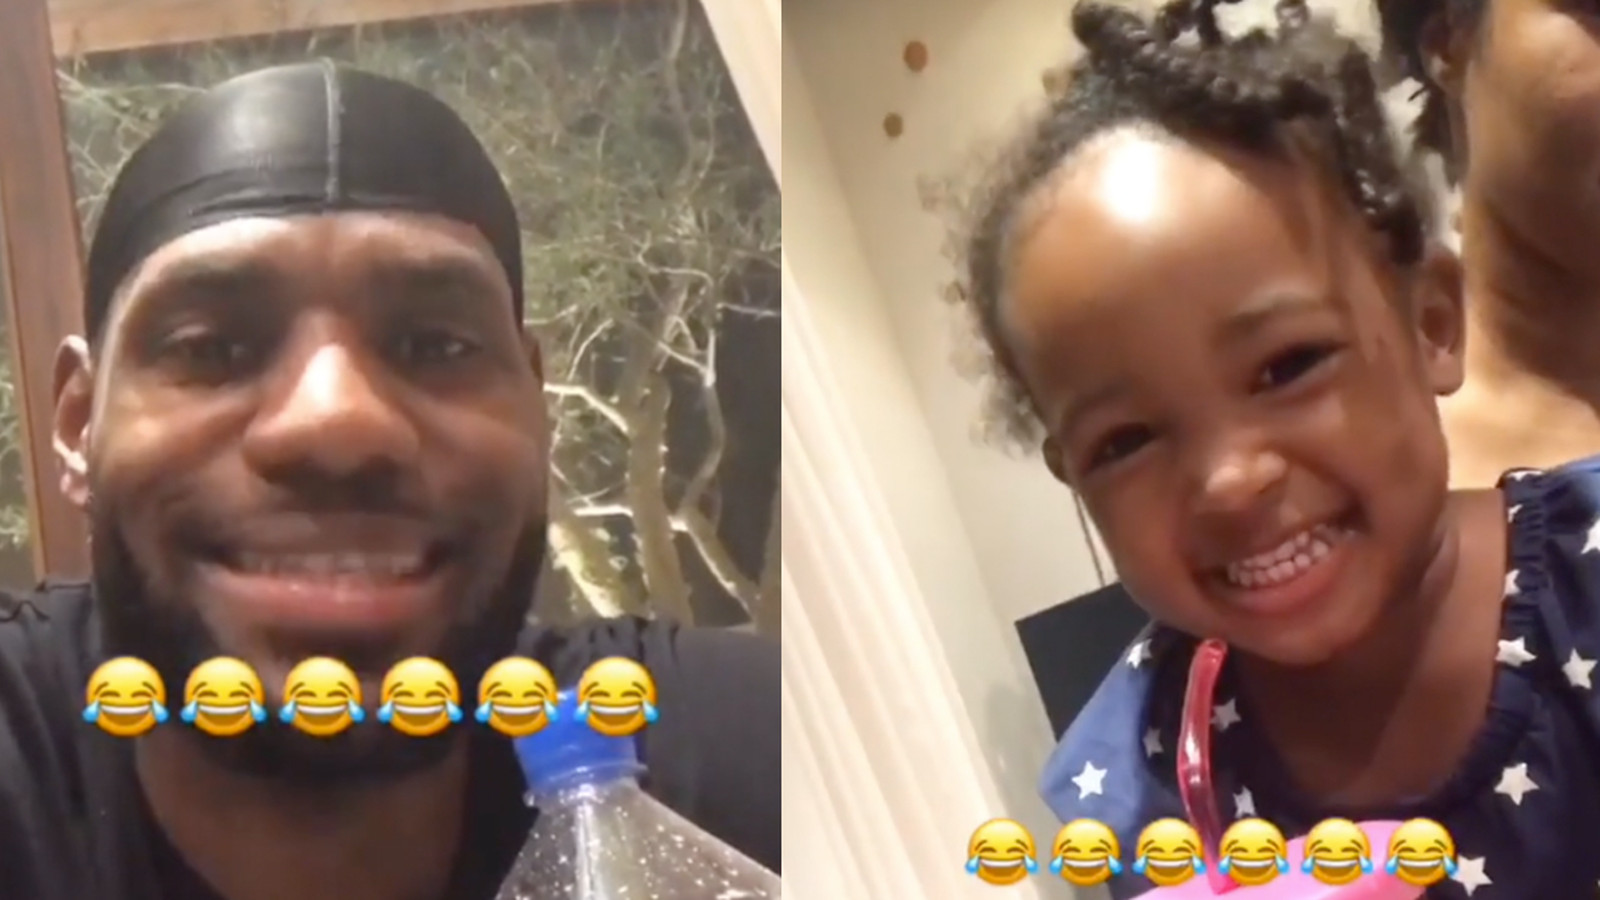 Lebron James Beatboxing With His Daughter On Ig Is The